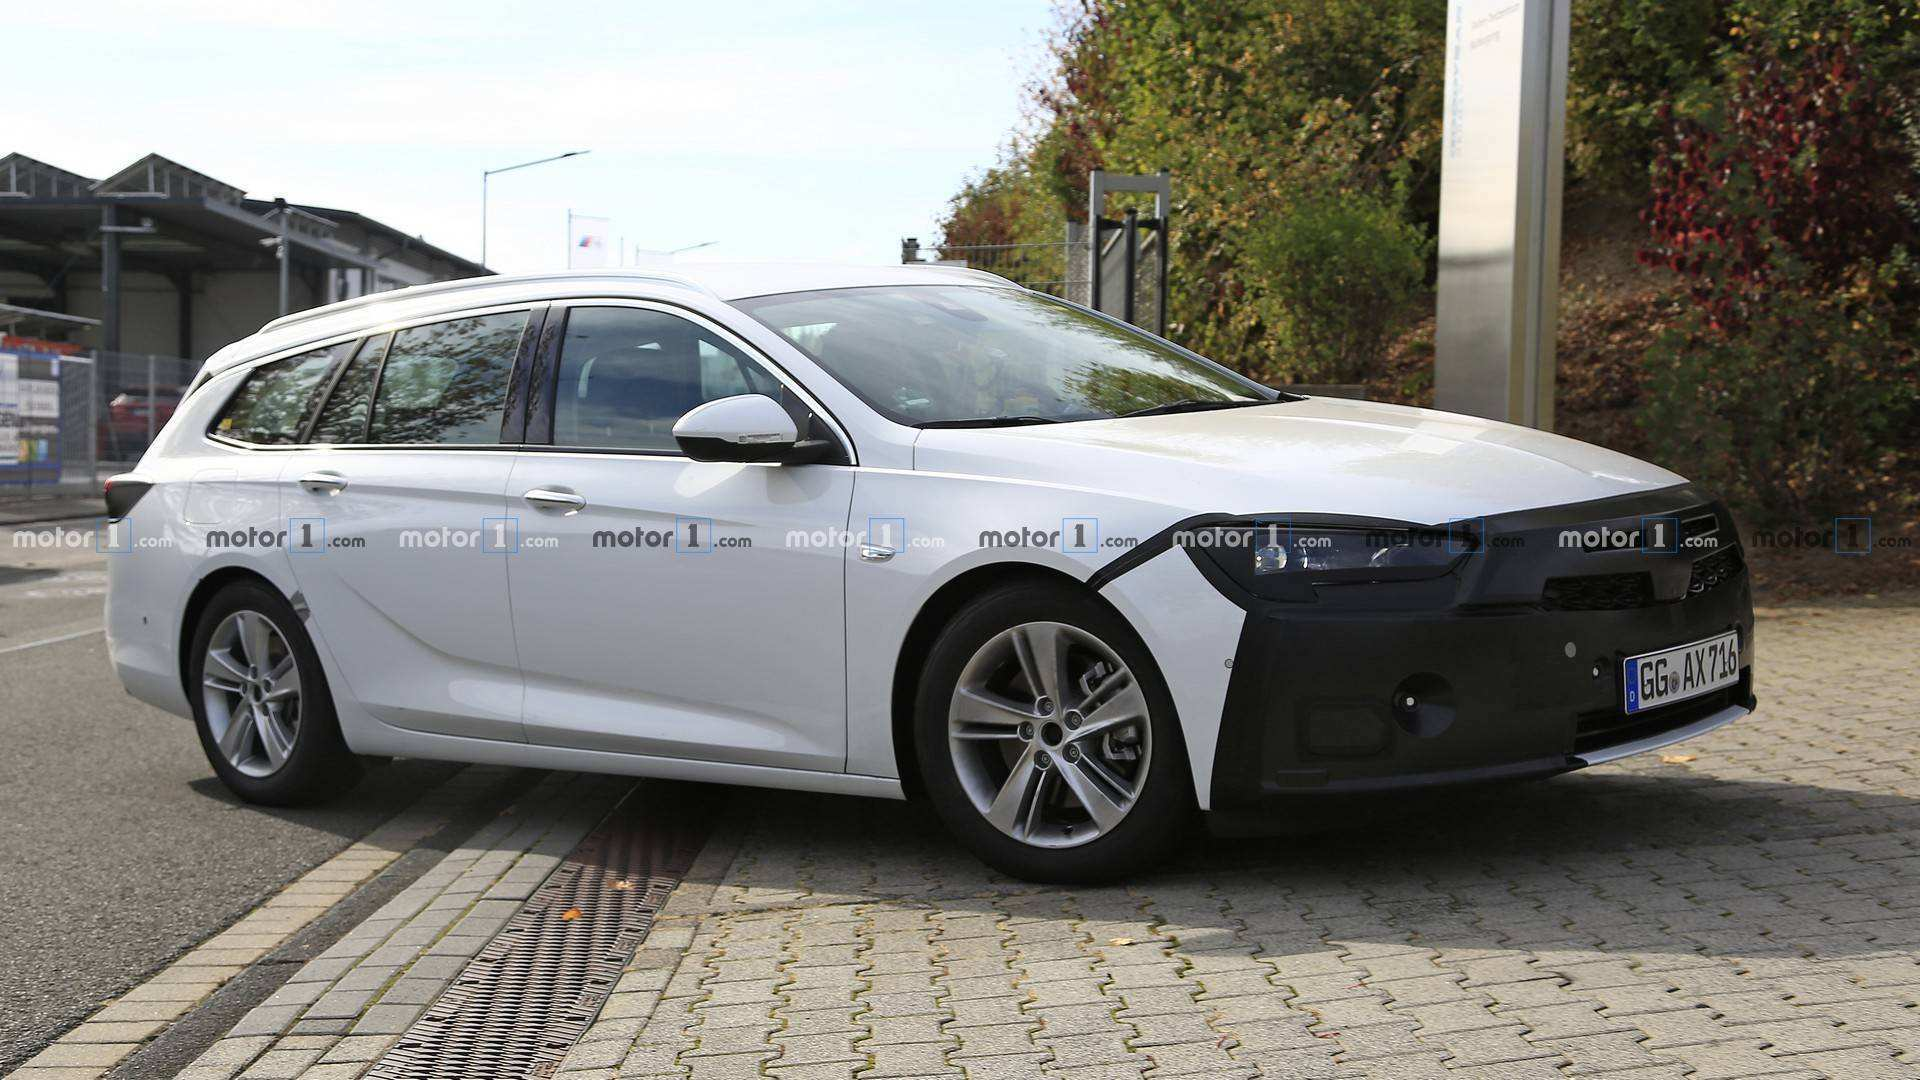 82 New Opel Insignia Opc 2020 Exterior and Interior by Opel Insignia Opc 2020